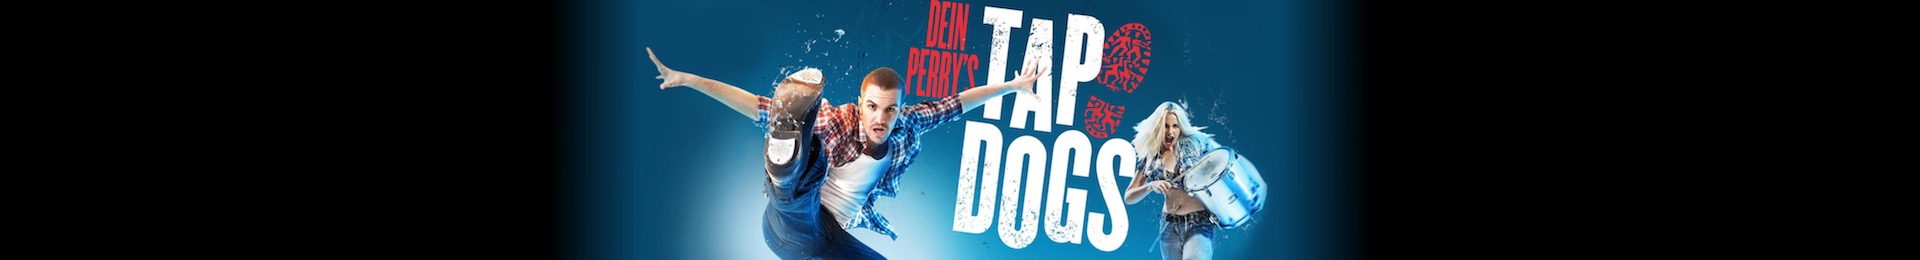 Tap Dogs banner image